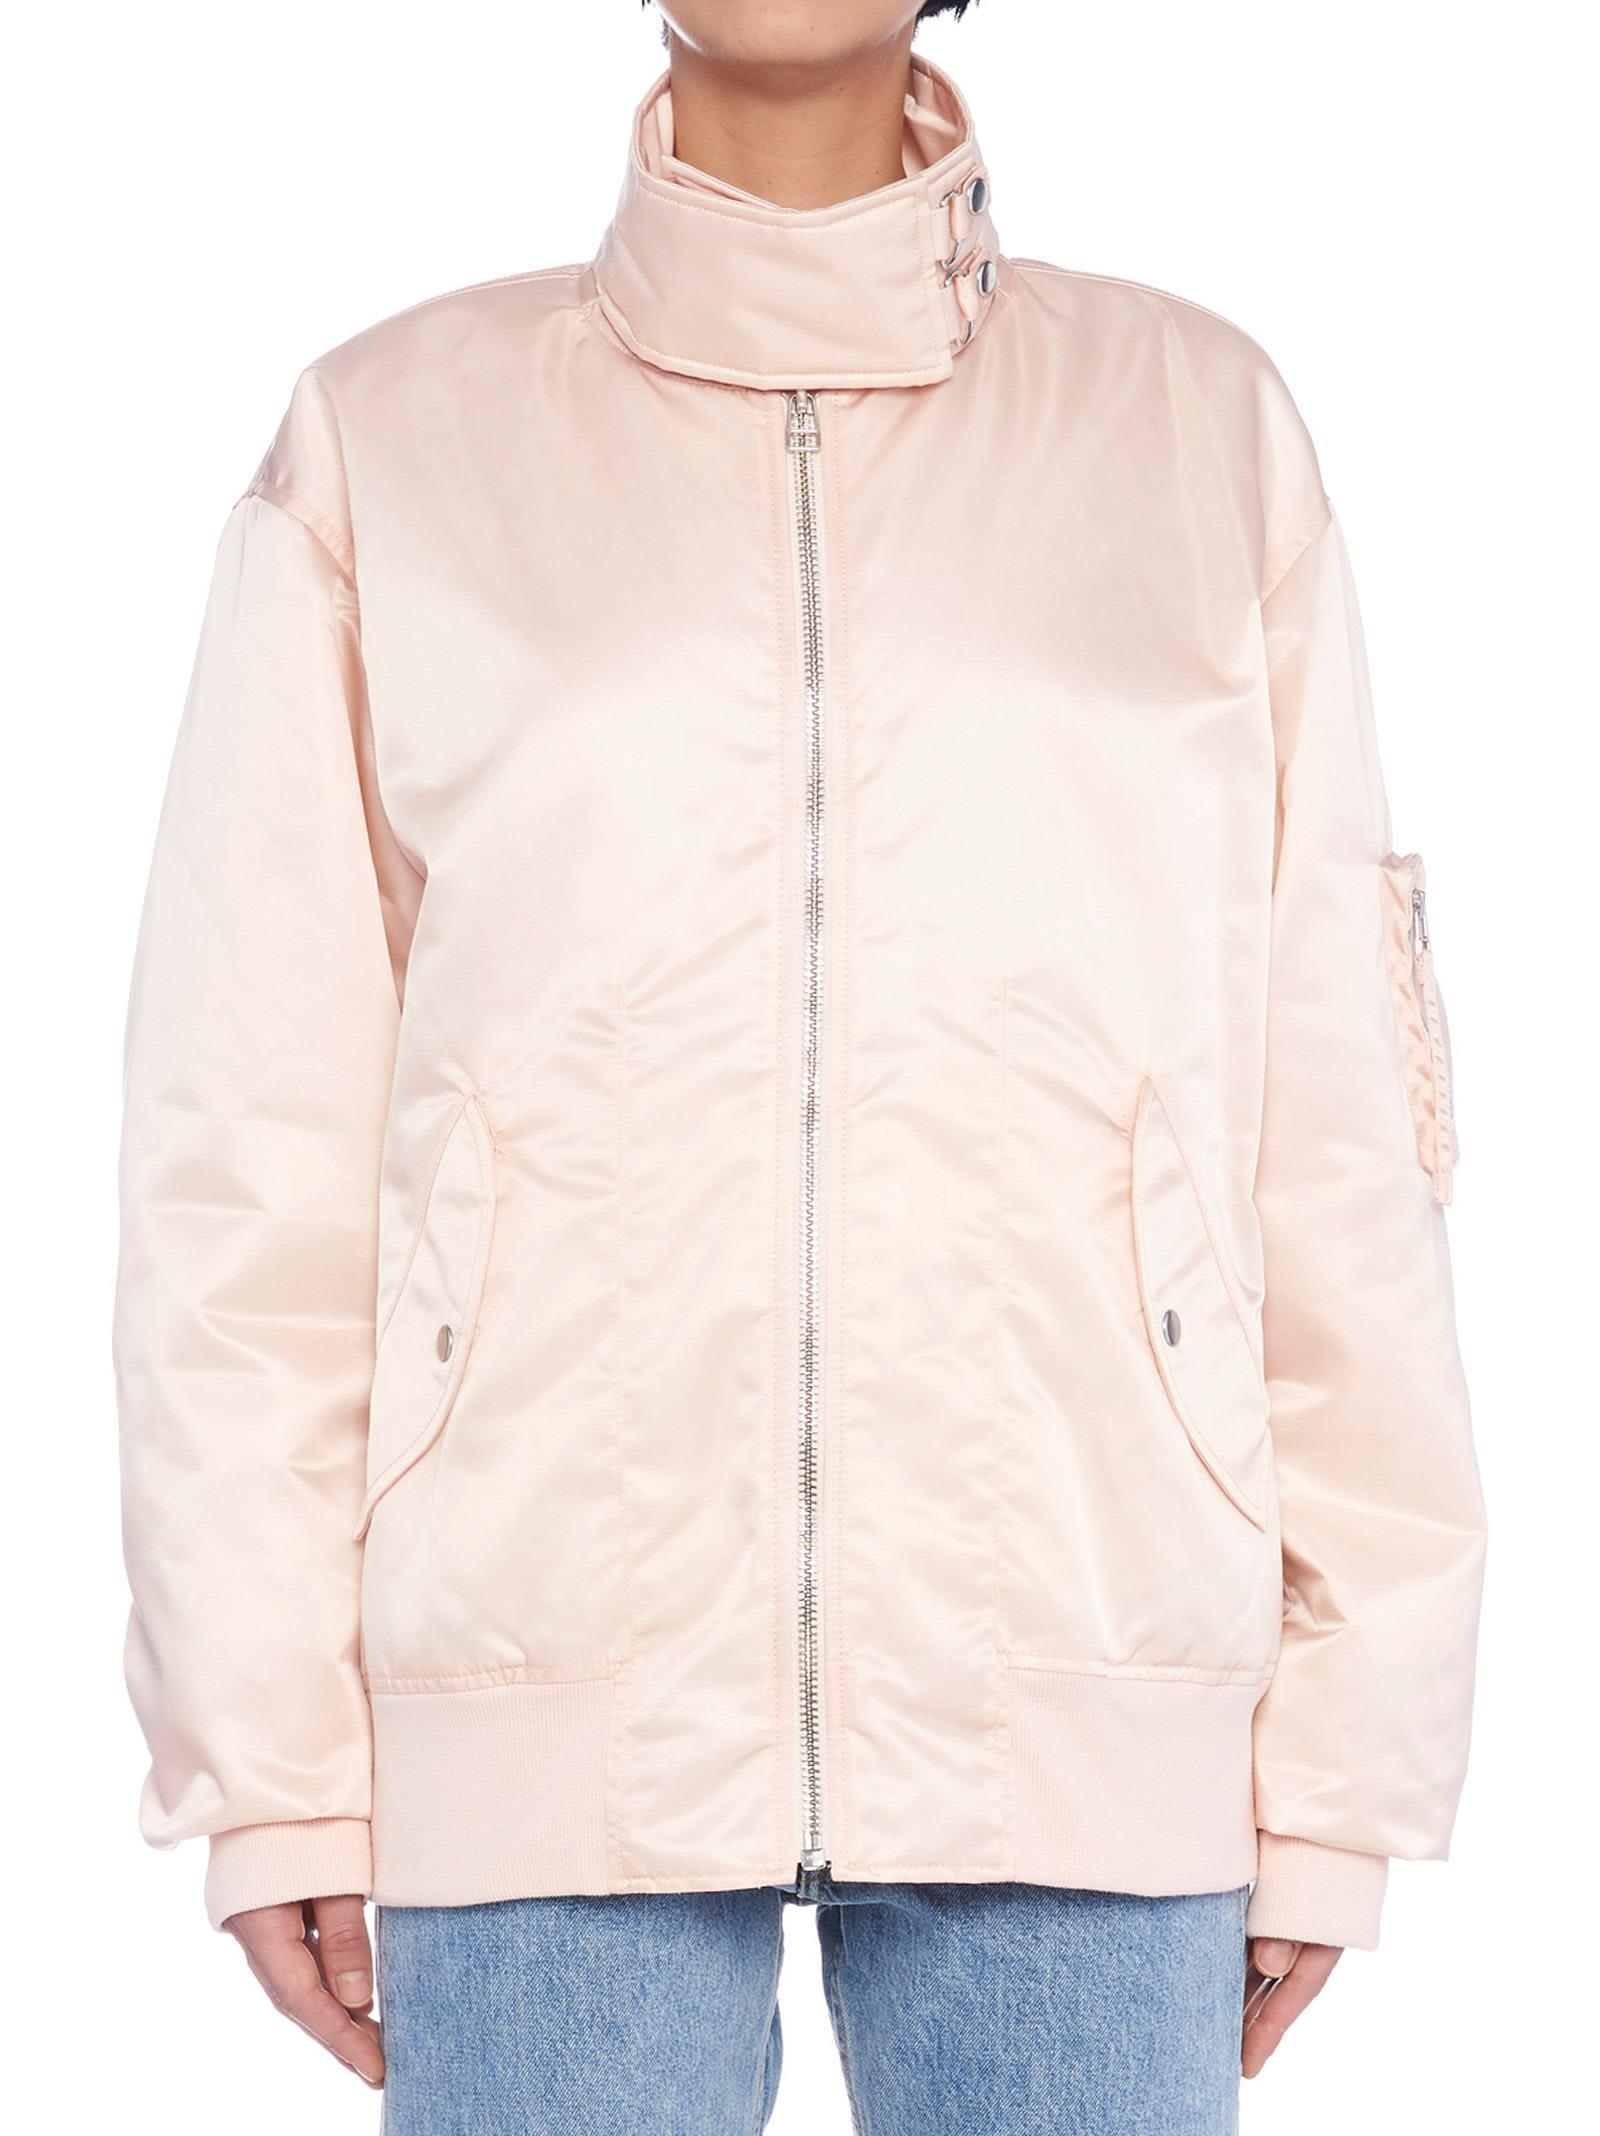 6fe61177e Oversized-Collar Bomber Jacket - Pink